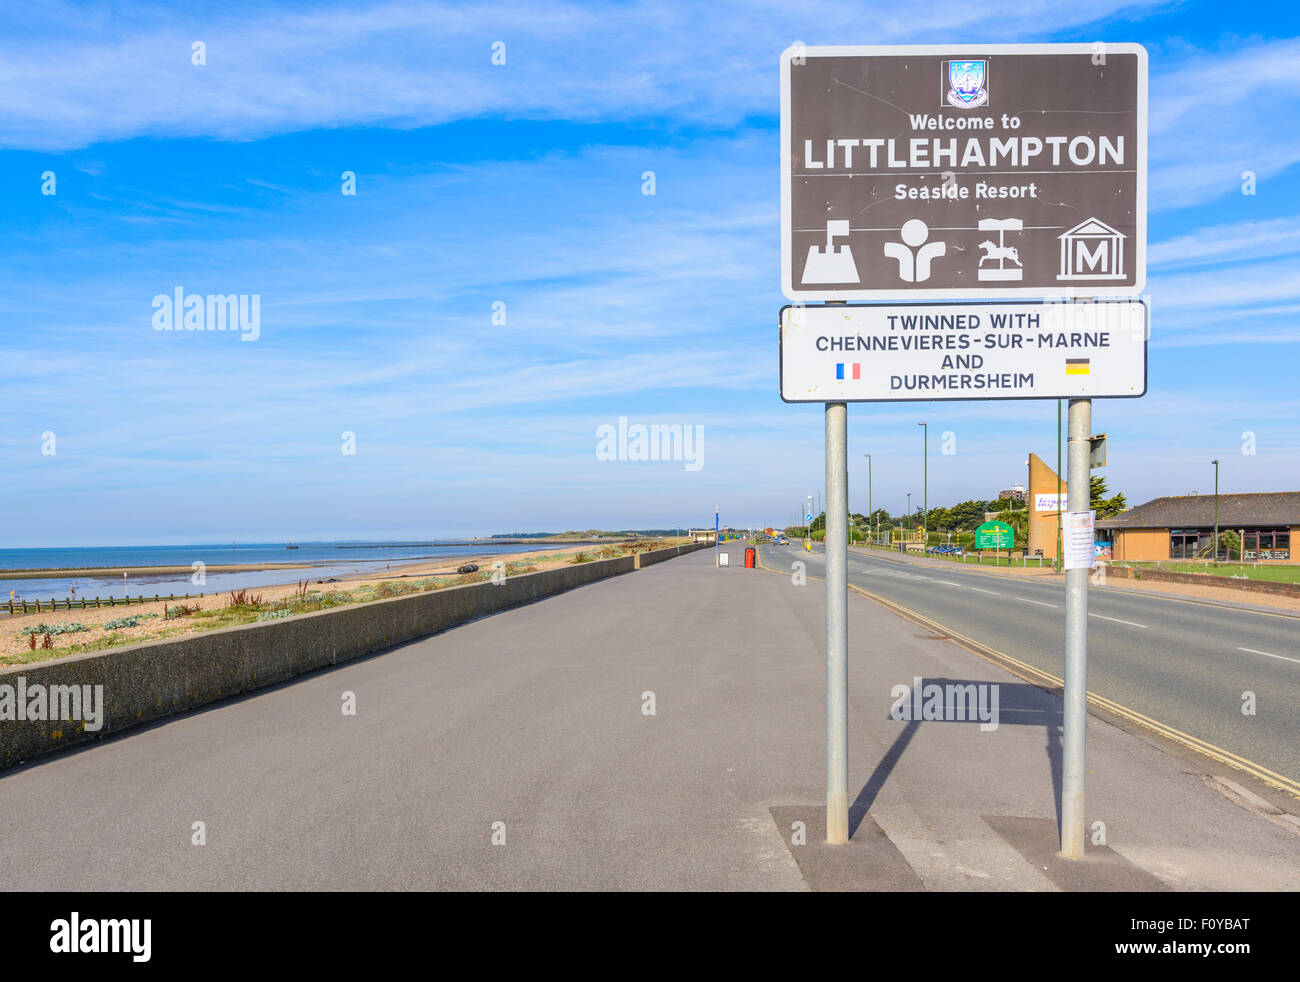 Twinned with sign under the Welcome to Littlehampton sign in Littlehampton, West Sussex, England, UK. - Stock Image